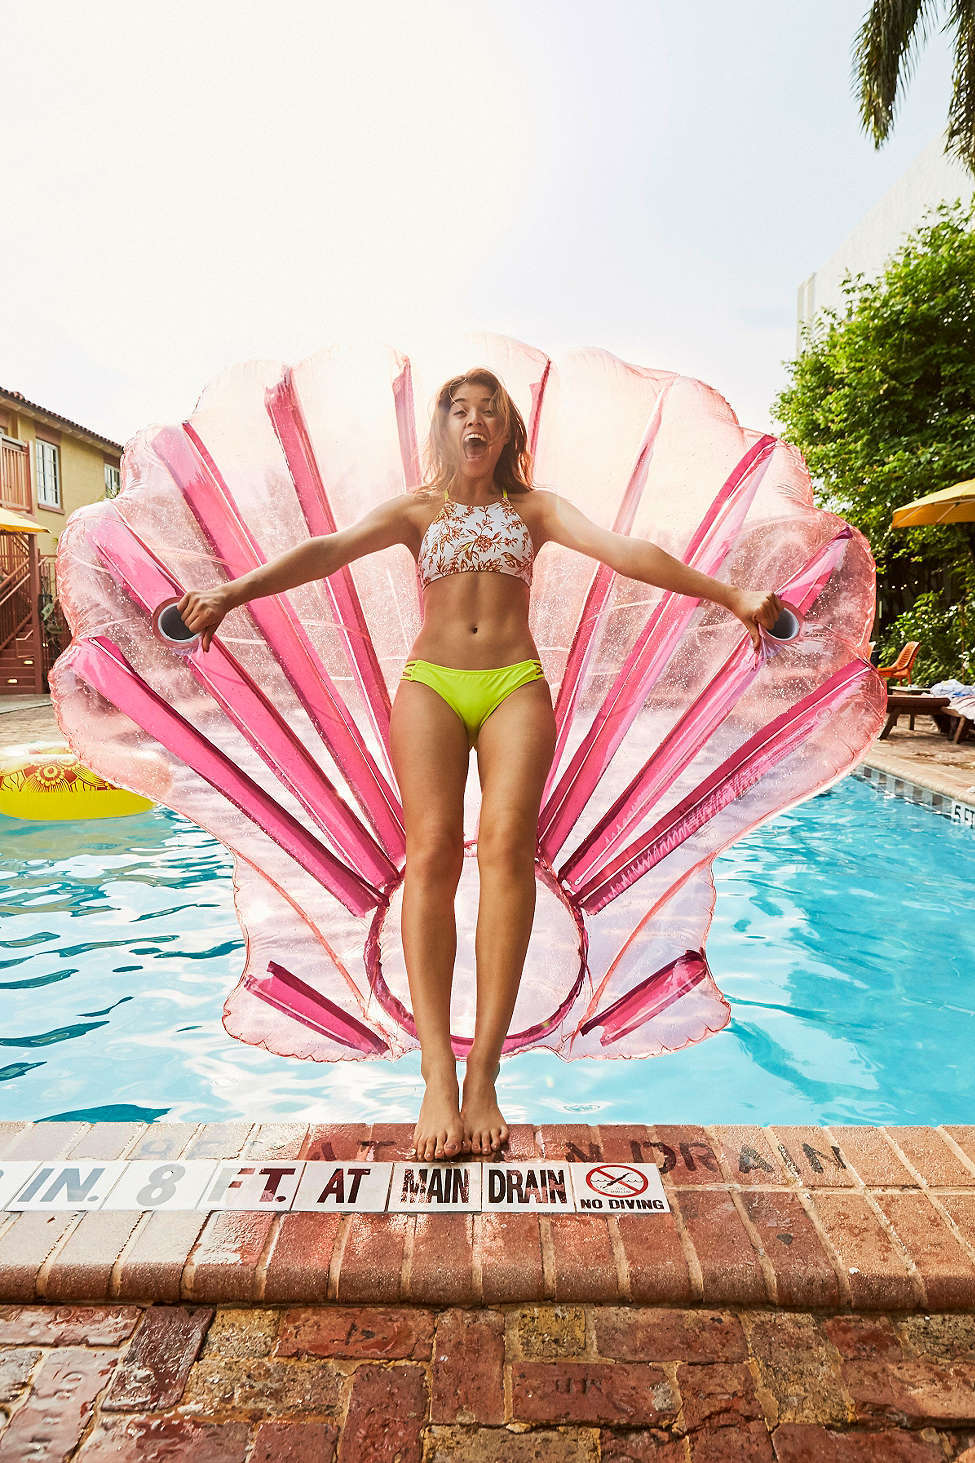 Pool float shell held by girl standing at the deep end